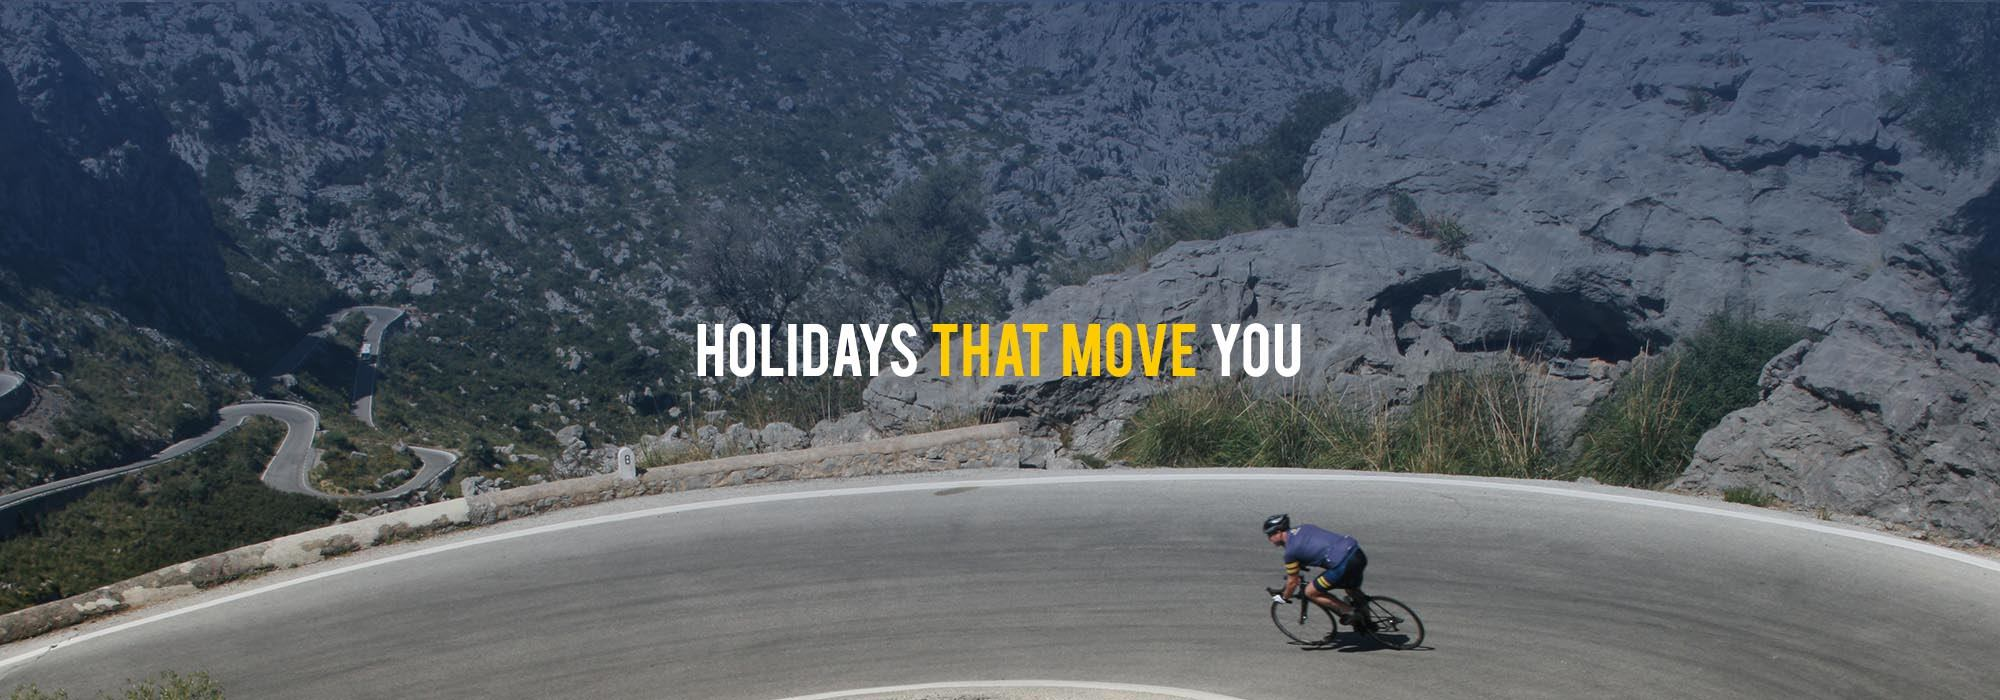 ⬆⬆⬆ Use our search engine above to search for your dream cycle holiday ⬆⬆⬆